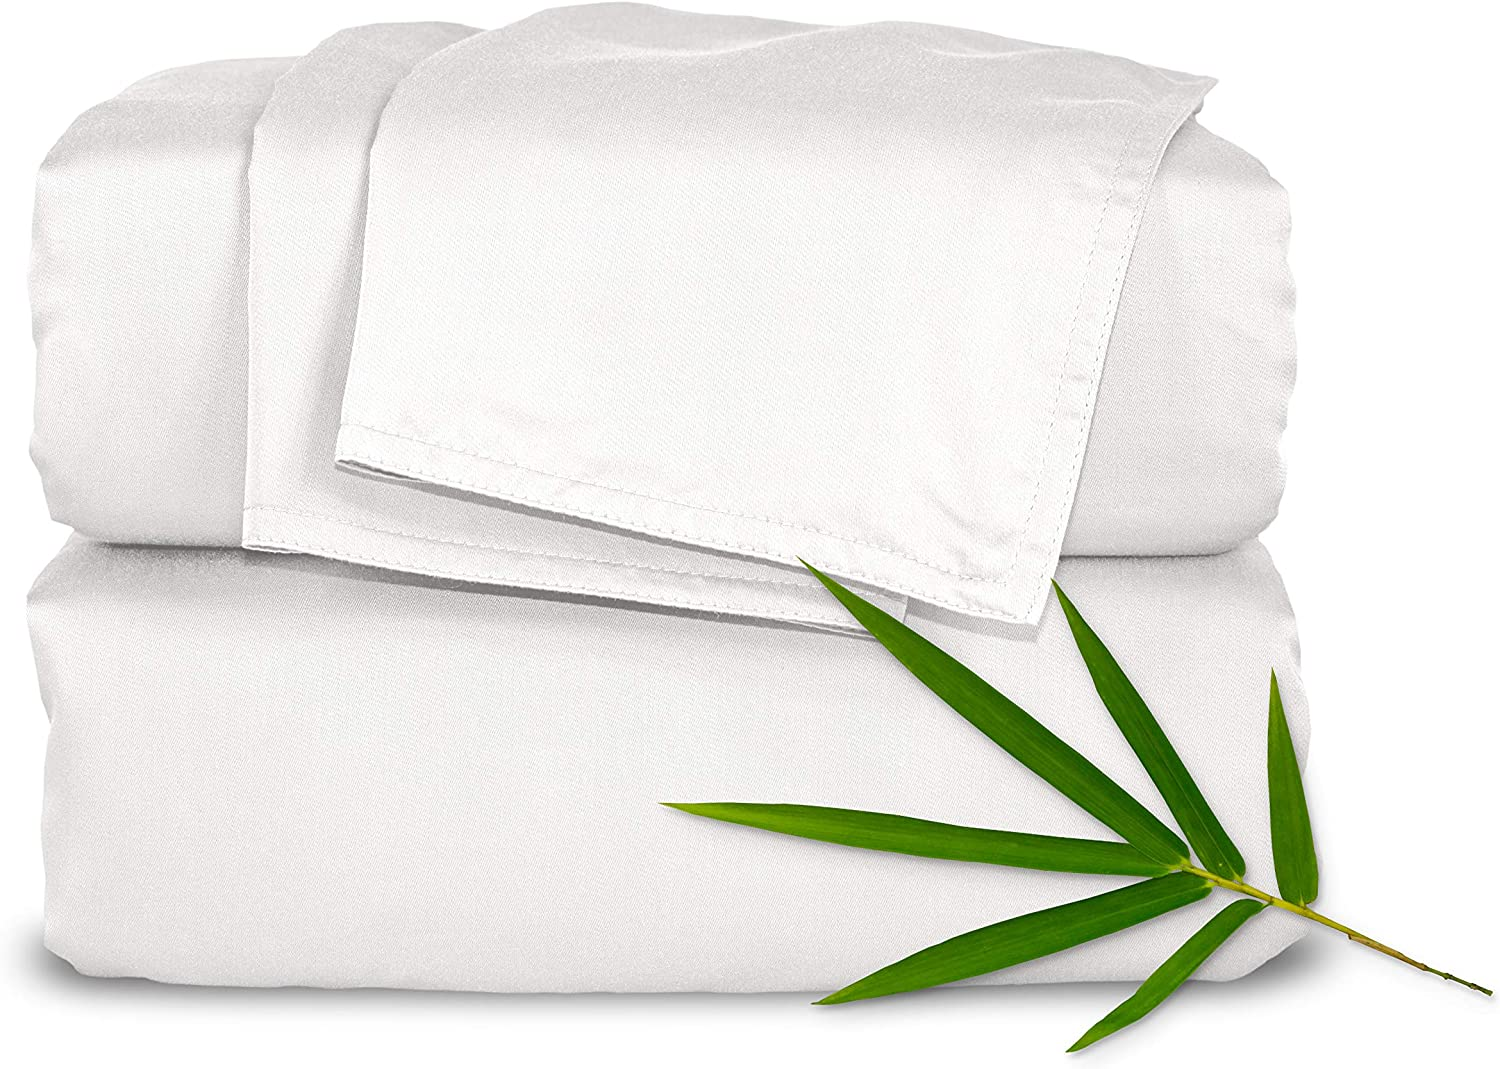 "Pure Bamboo Sheets - Queen Size Bed Sheets 4-pc Set - 100% Organic Bamboo - Incredibly Soft - Fits Up to 16"" Mattress - 1 Fitted Sheet, 1 Flat Sheet, 2 Pillowcases (Queen, White)"